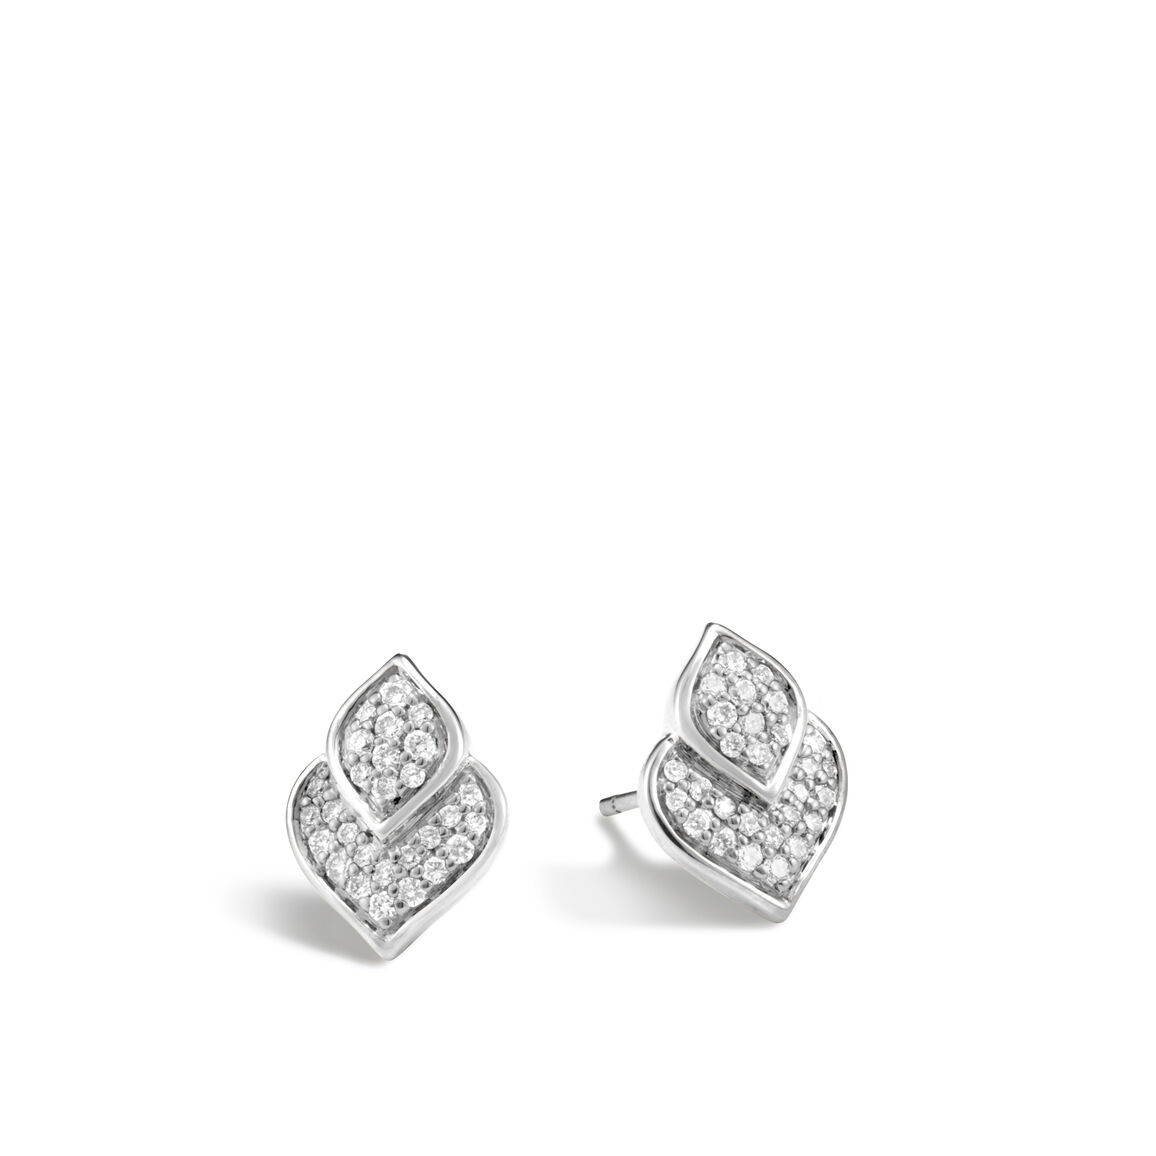 Legends Naga Stud Earring in Silver with Diamonds